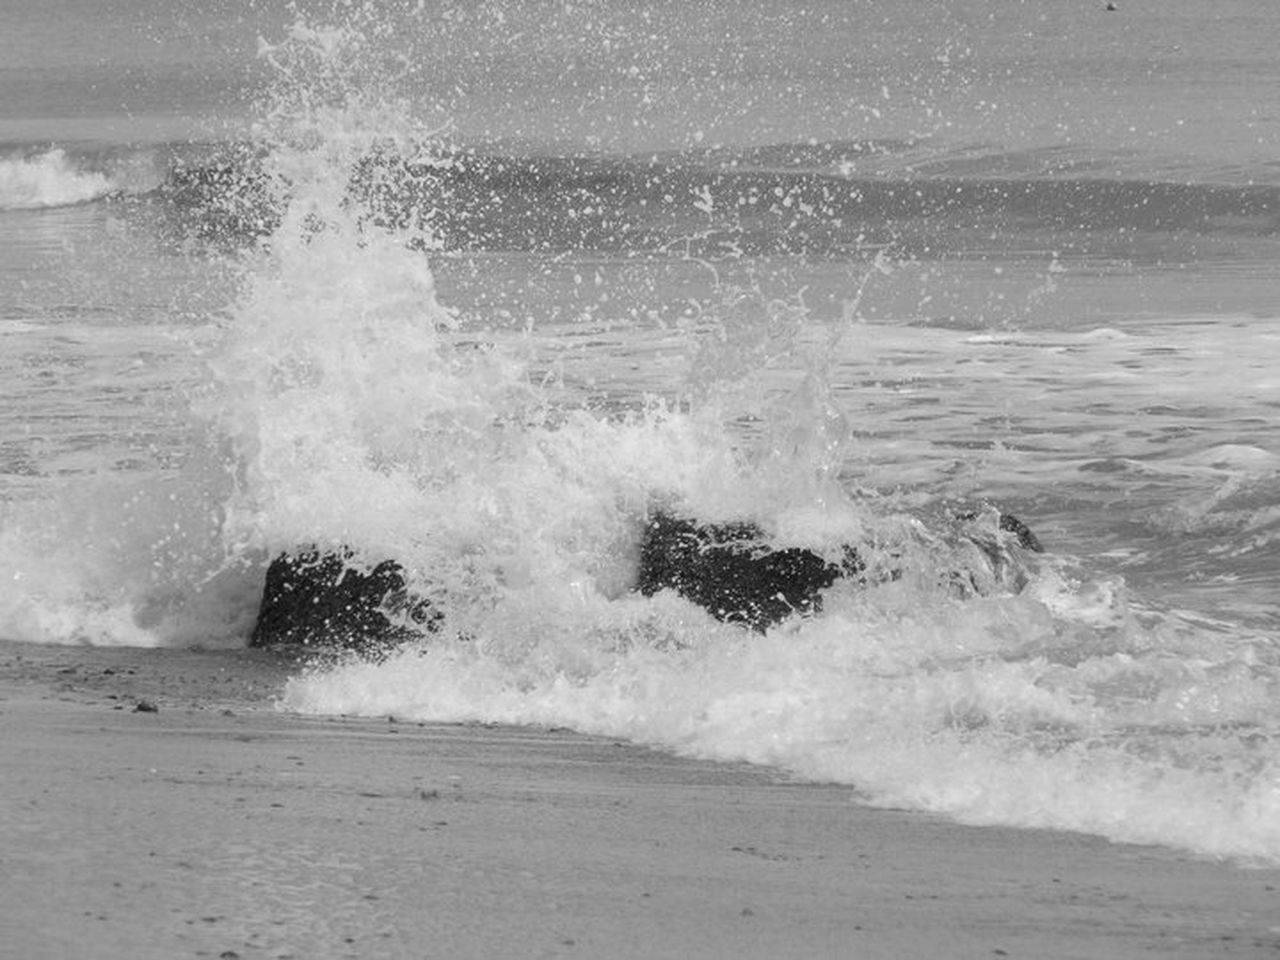 sea, wave, motion, force, power in nature, crash, breaking, hitting, shore, rough, water, no people, nature, beach, beauty in nature, horizon over water, risk, day, outdoors